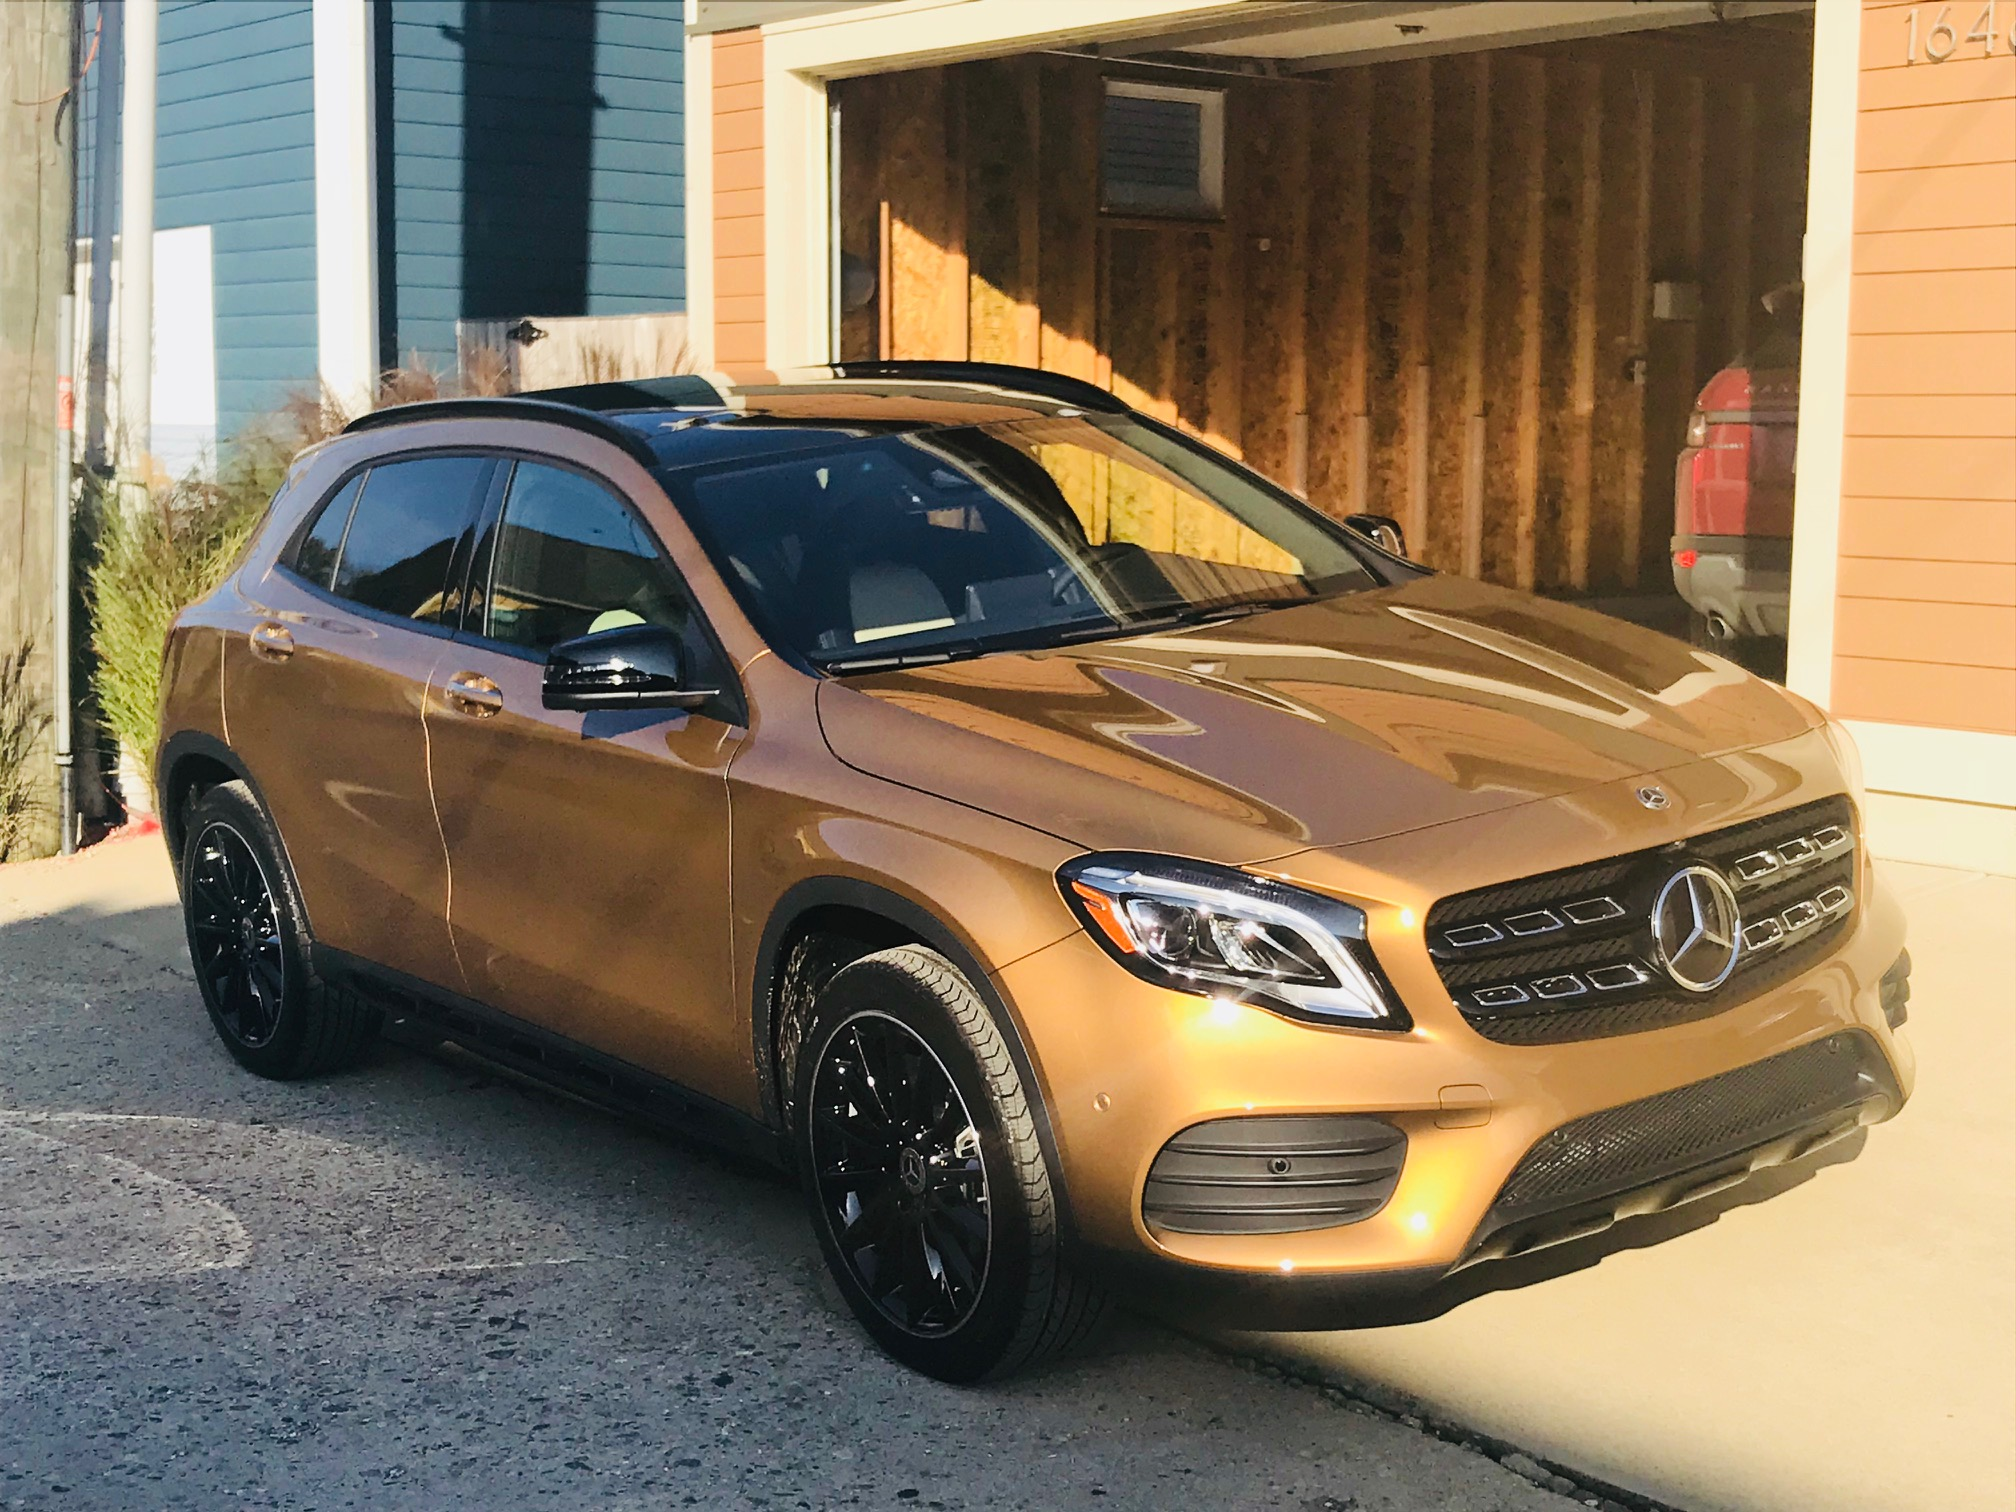 Say hello to Pfennig [Penny in German], my new 2018 Mercedes GLA250 4matic with all the bells and whistles. I love her.